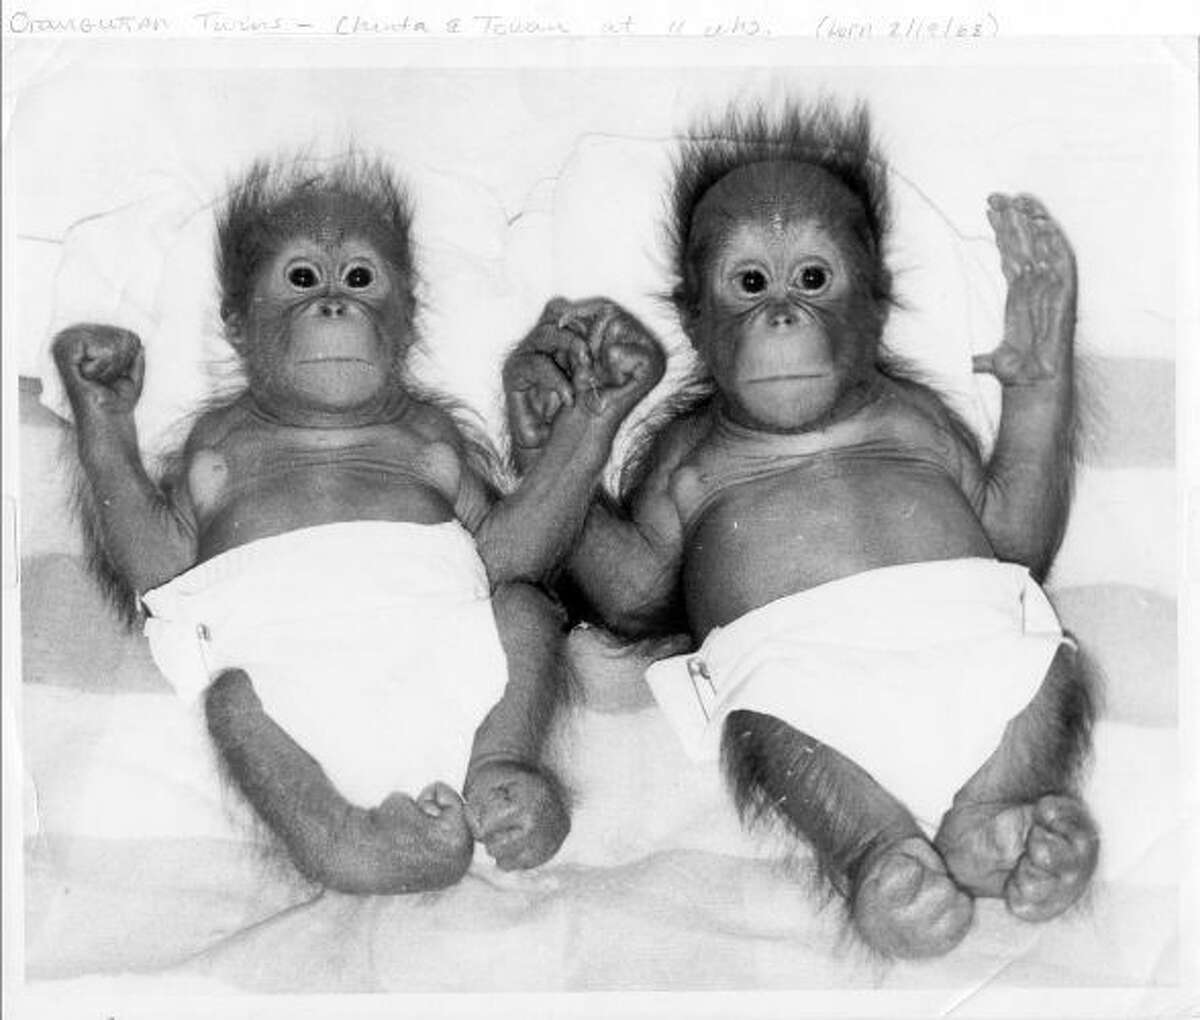 Chinta and late twin brother, Towan, were the first-known twin orangutans born in a zoo.